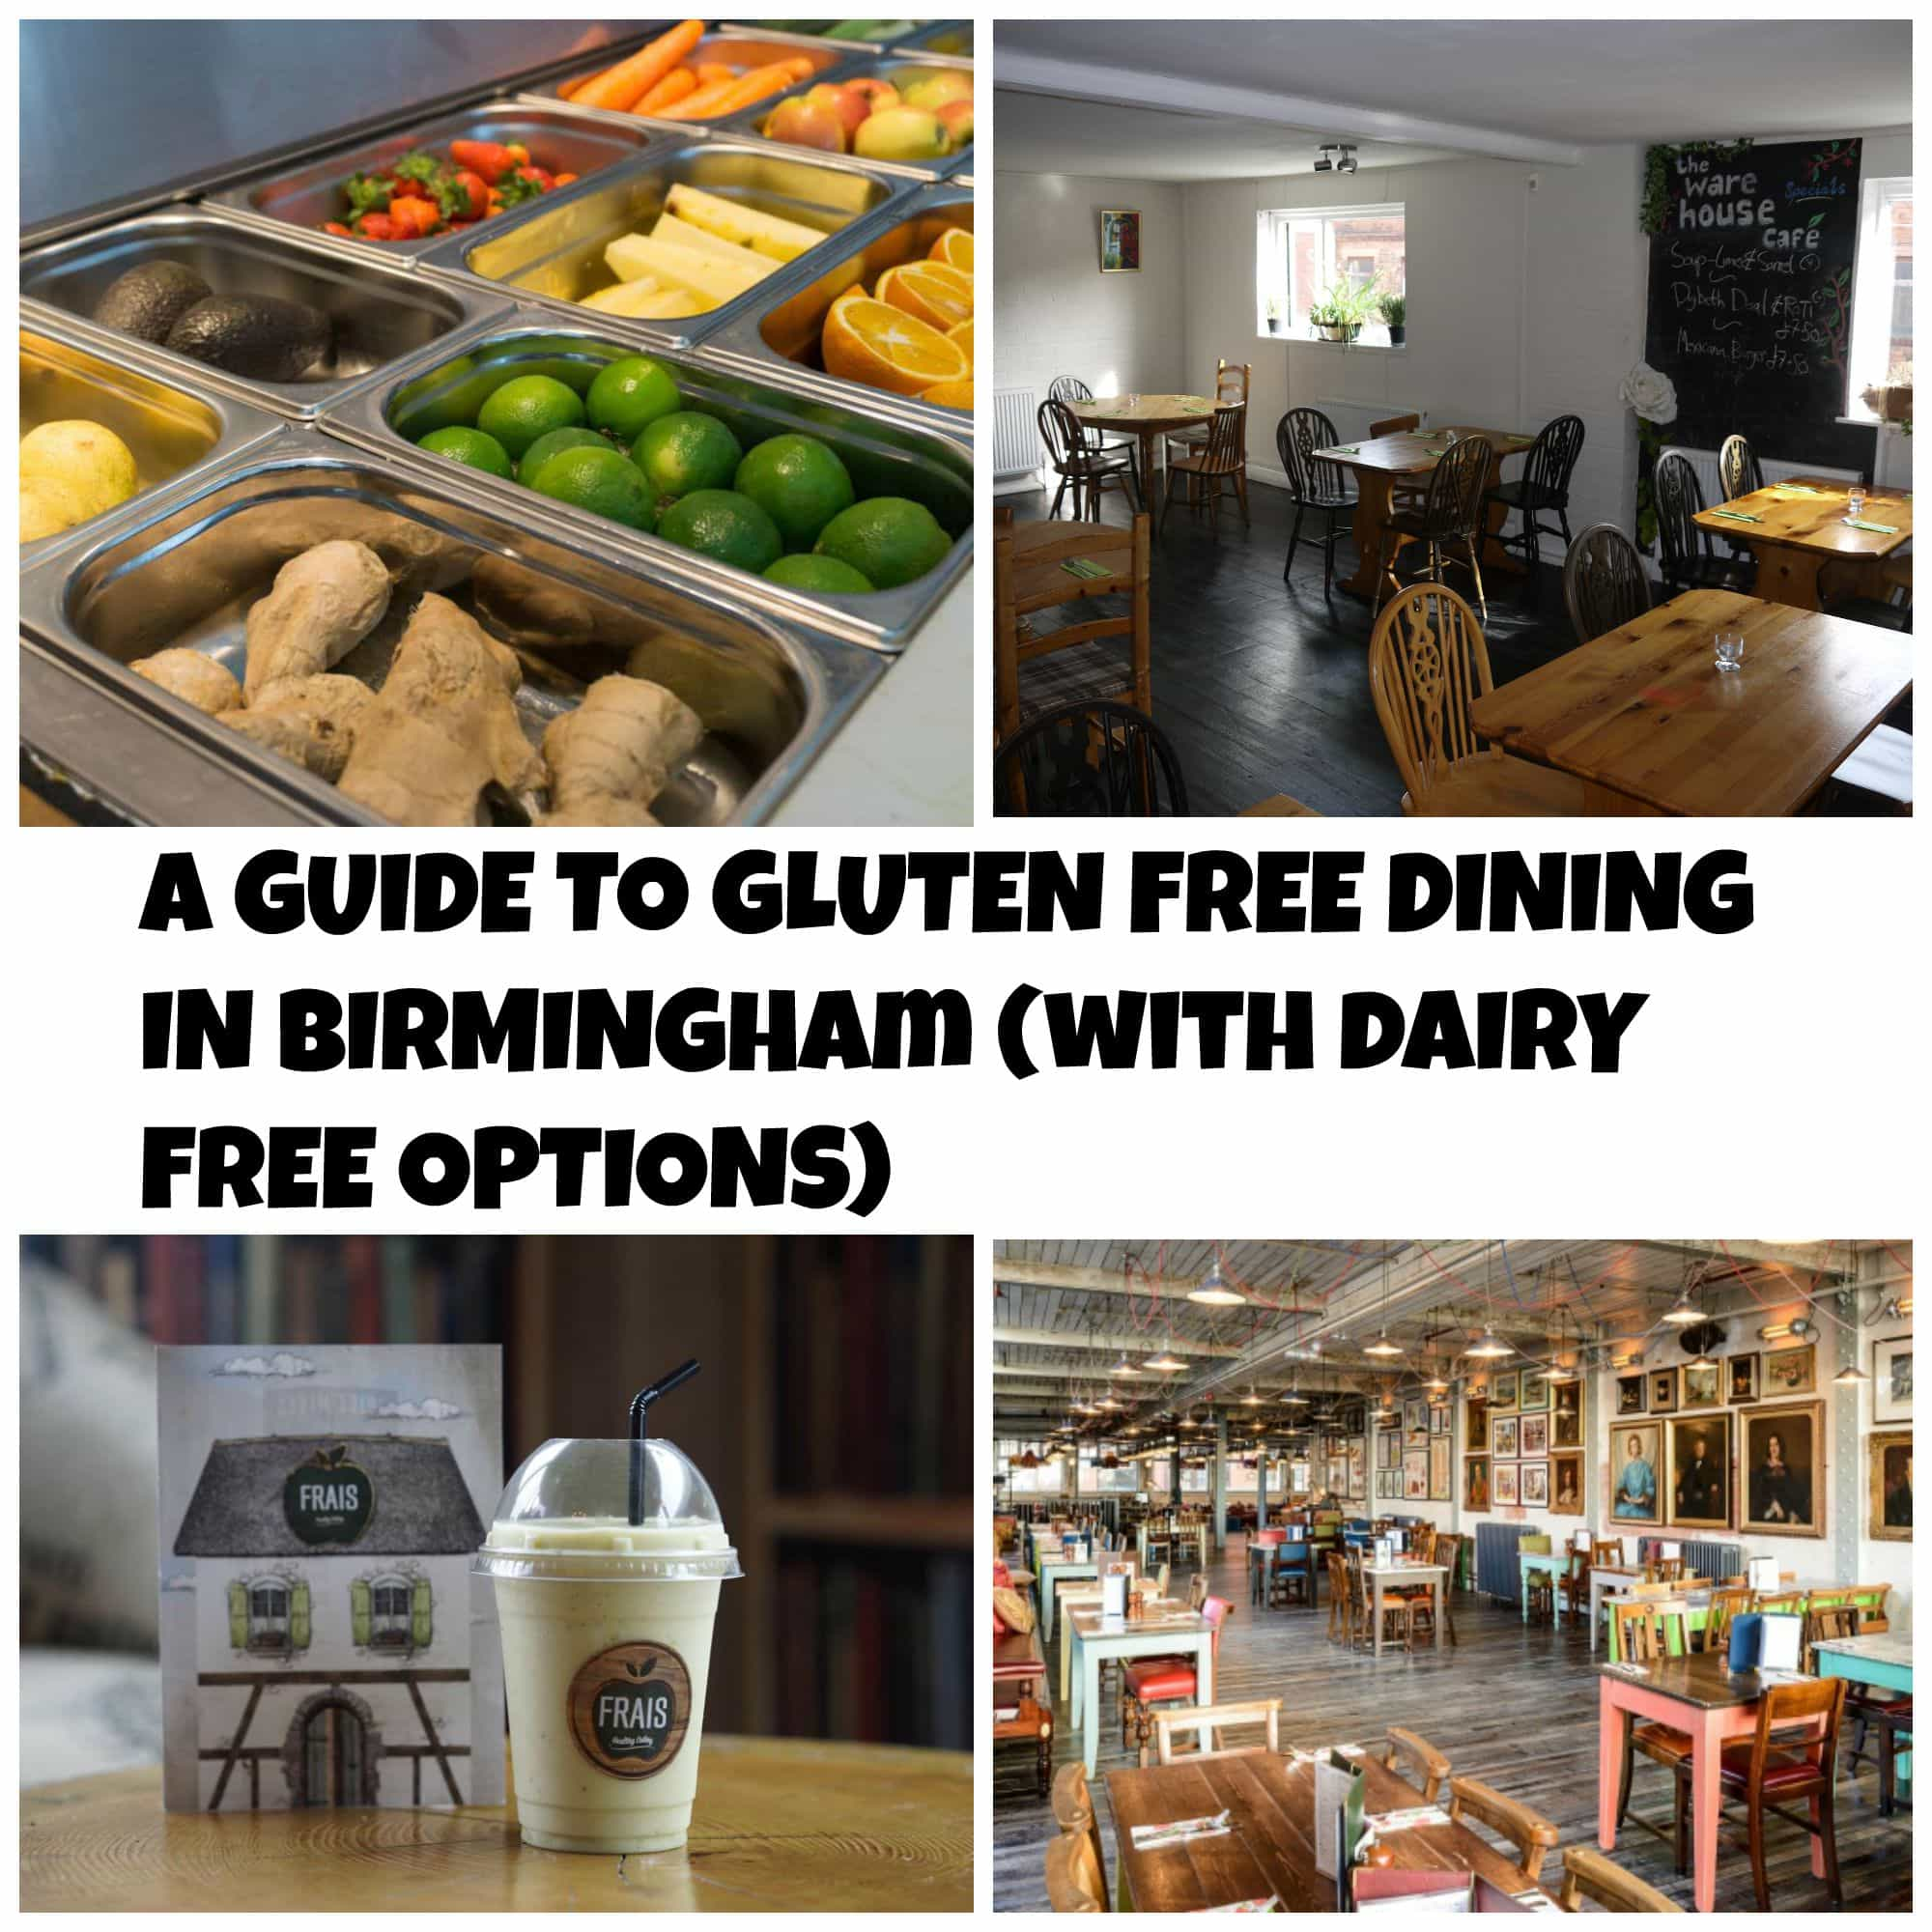 A guide to gluten free Birmingham with lots of dairy free options. If you are looking for gluten free restaurants in Birmingham, this guide is for you!